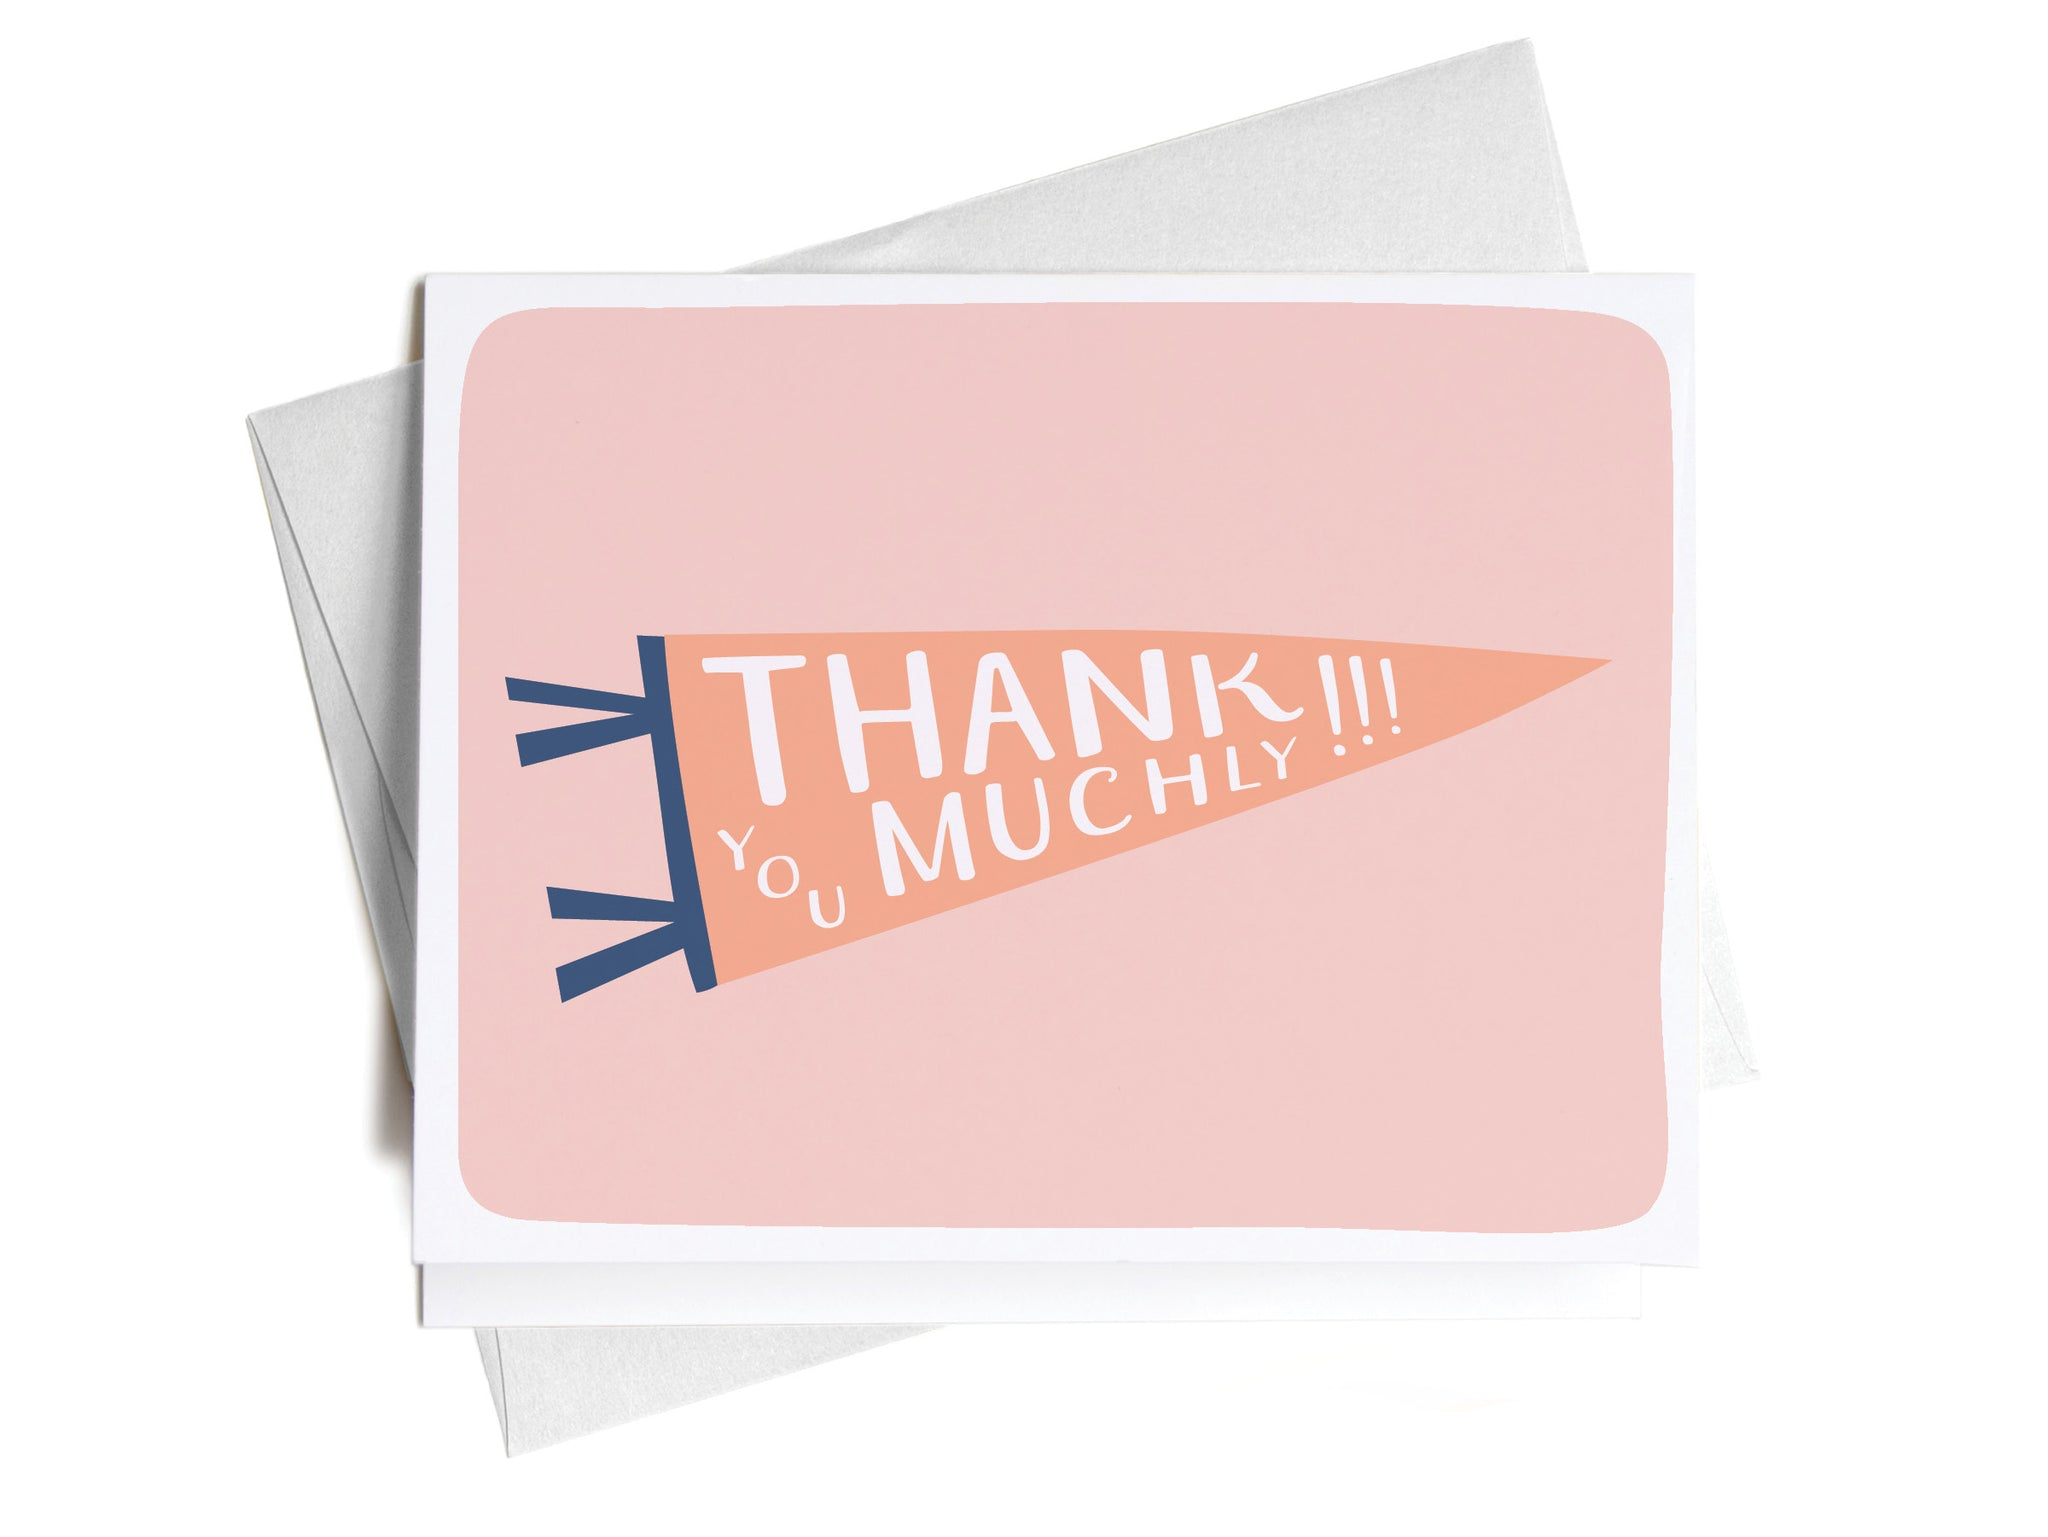 Thank You Muchly Pennant Flag Greeting Card